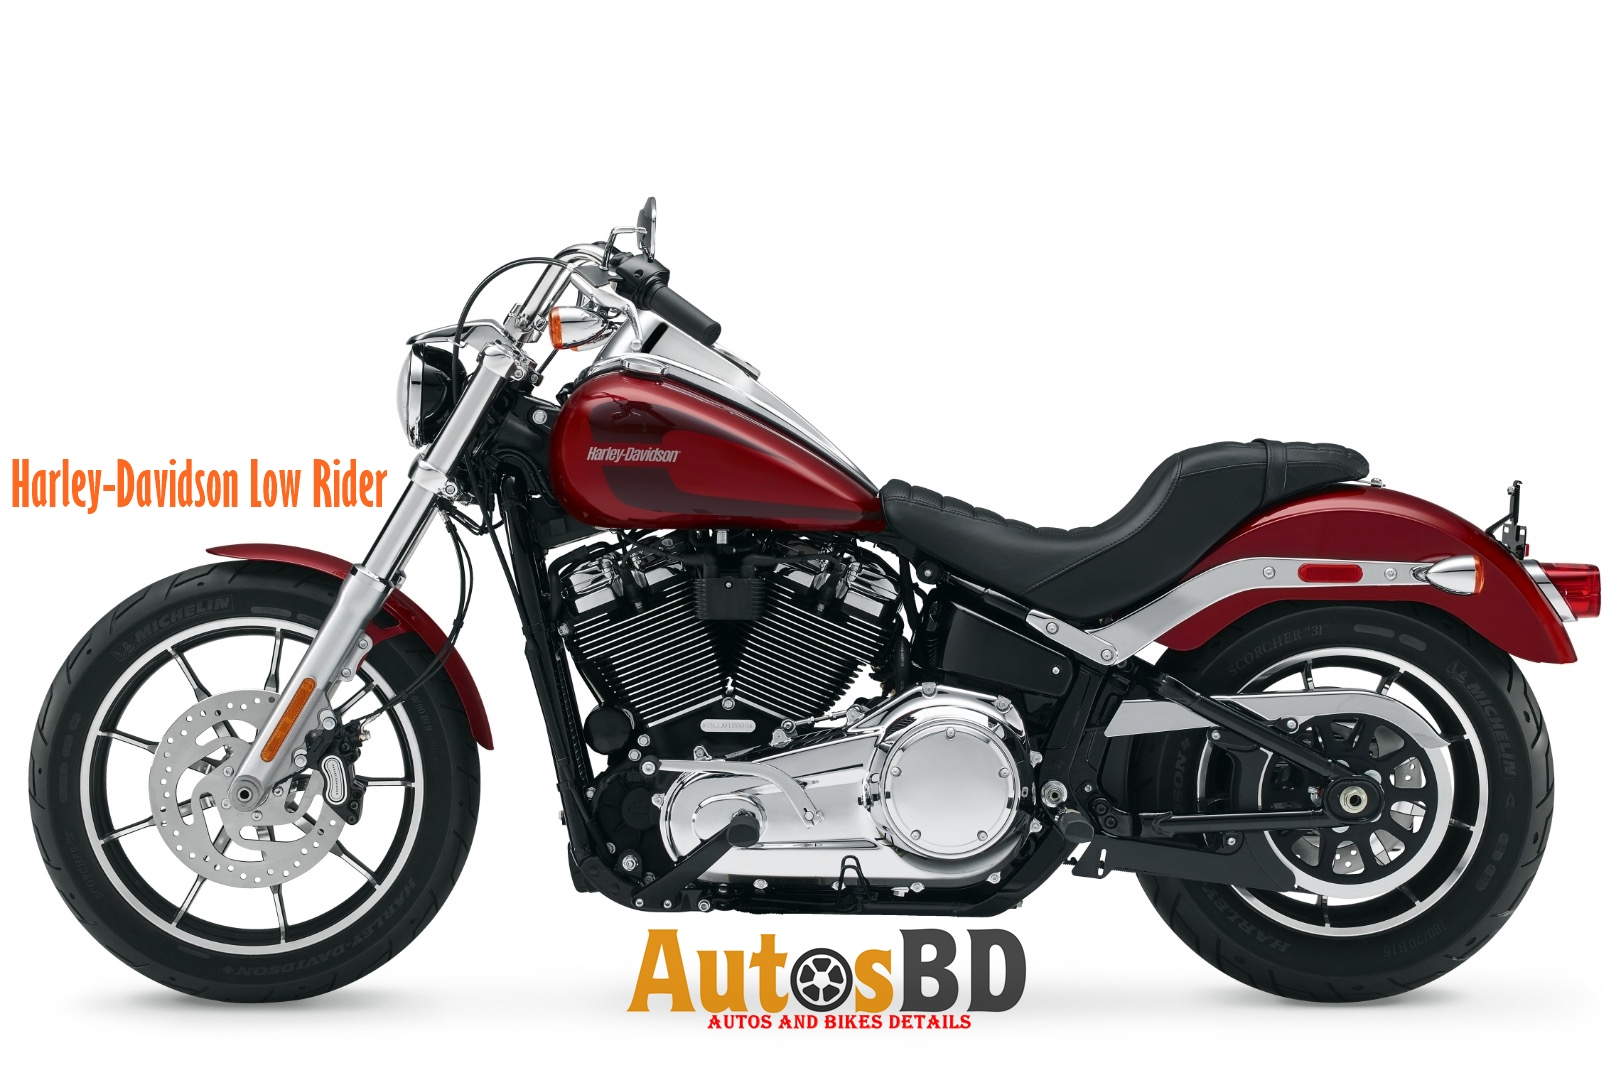 Harley-Davidson Low Rider Specification